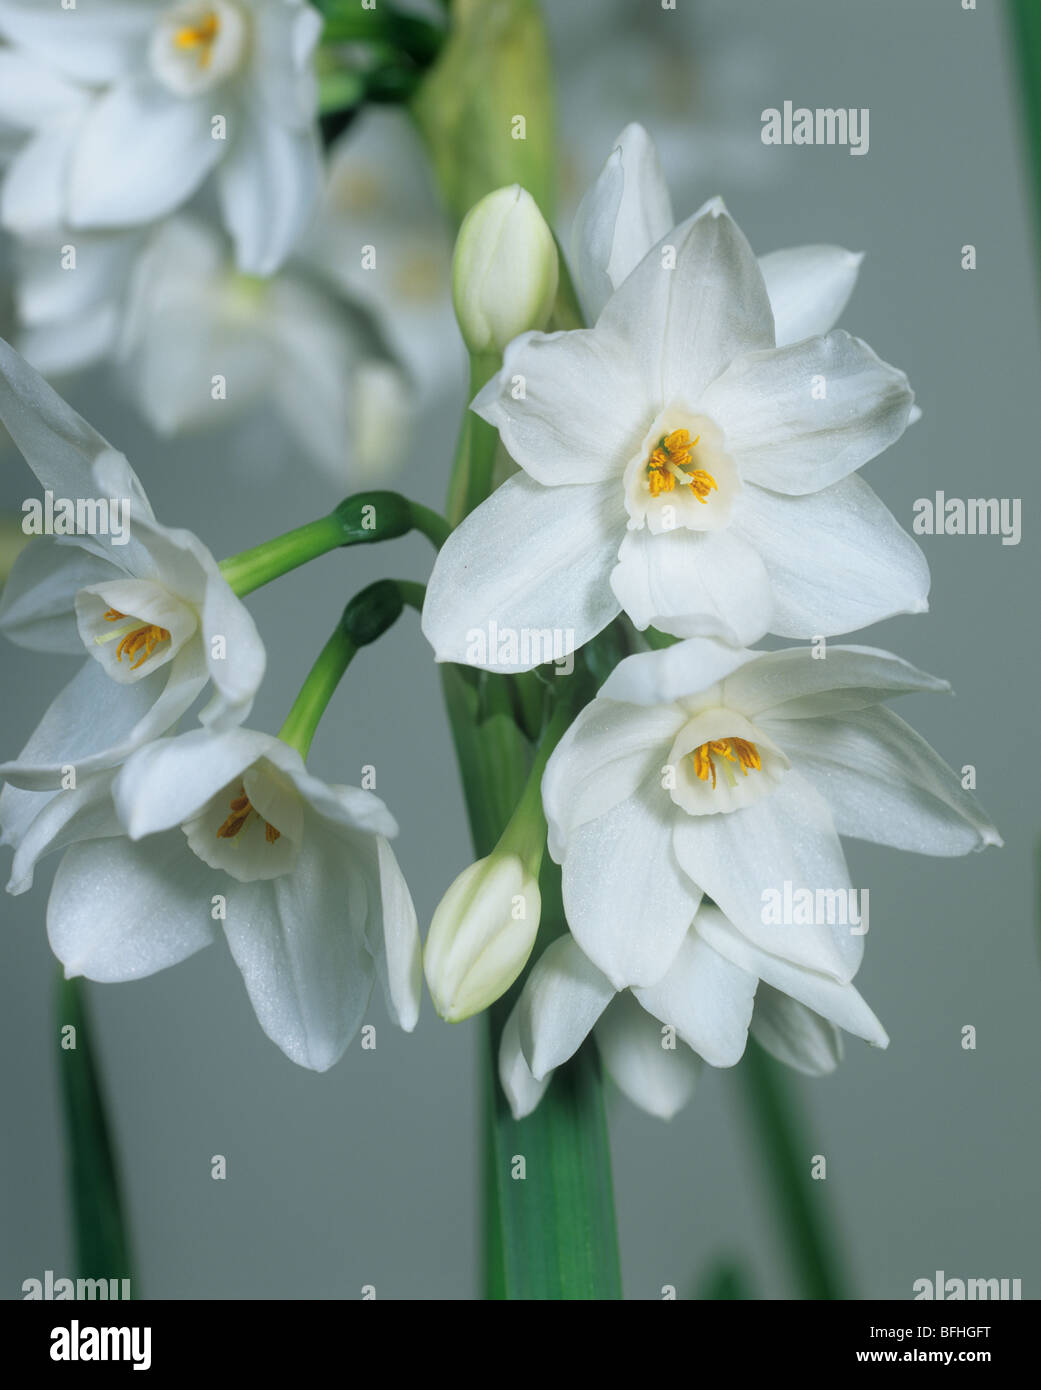 Daffodil Narcissus 'Paper White' flowers - Stock Image